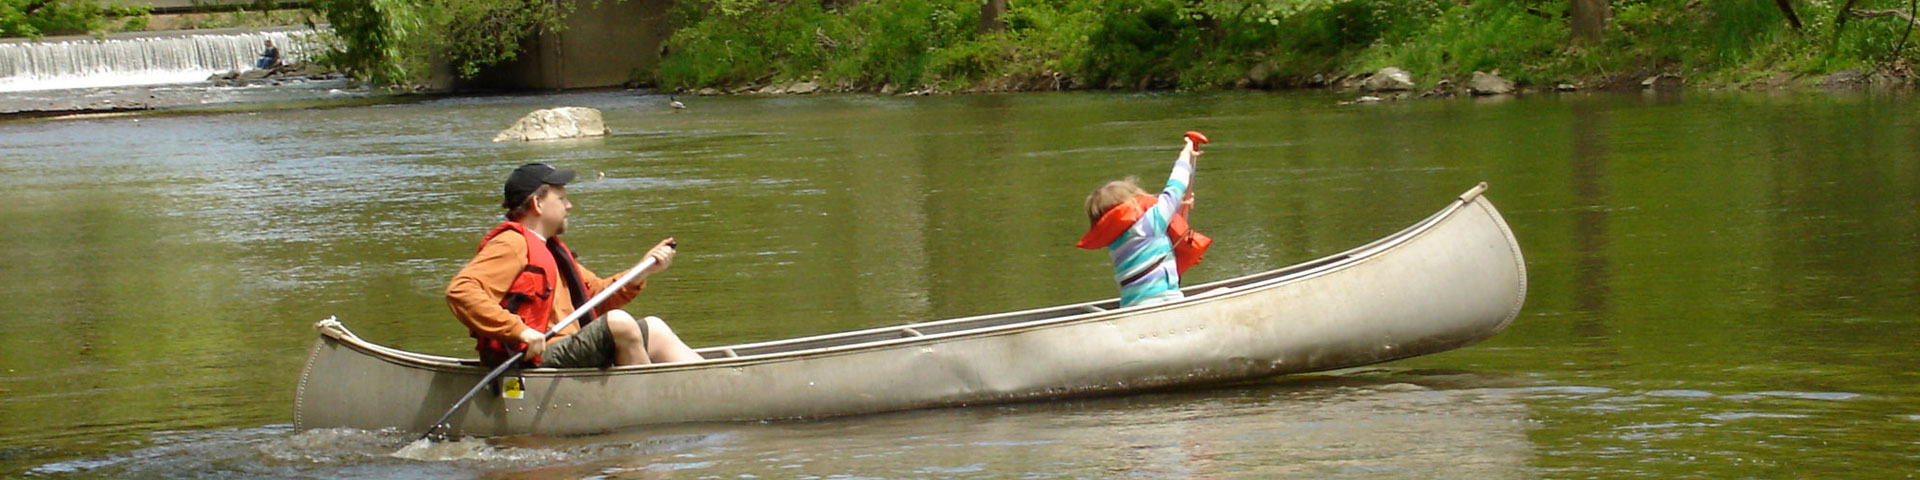 An adult male and a young girl paddle in a canoe on a creek.